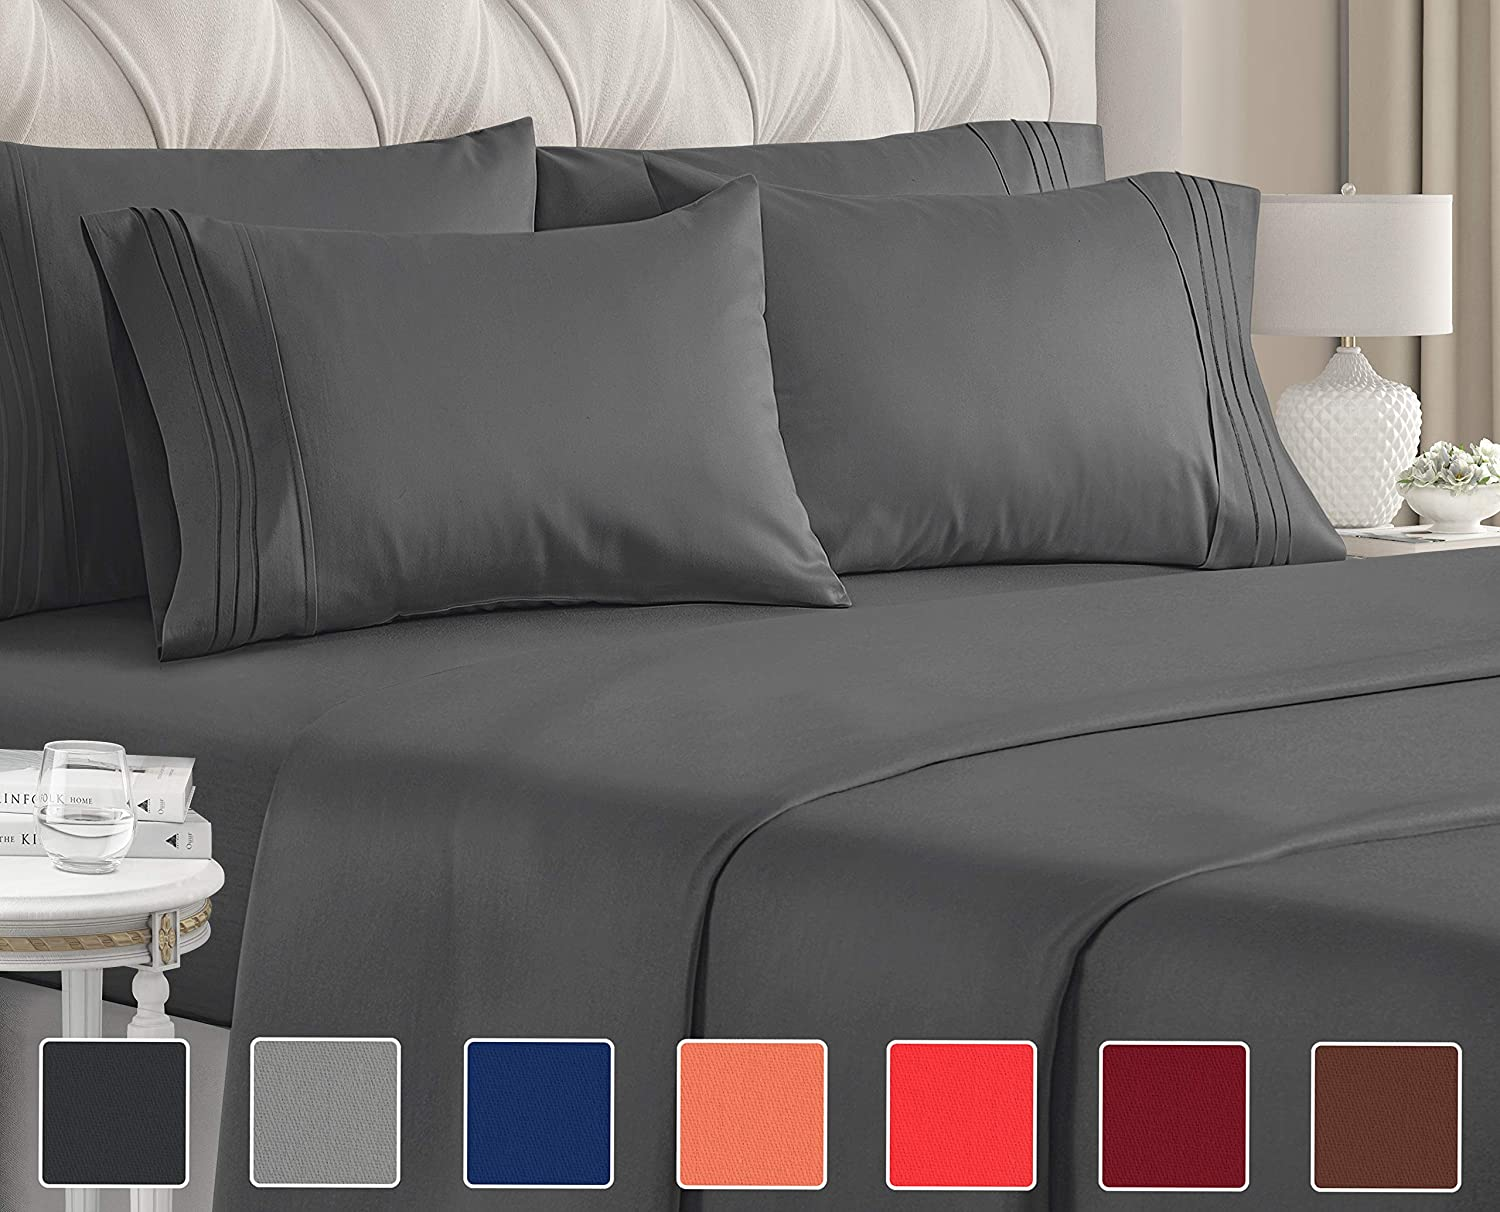 Twin Size Sheet Set - 4 Piece - Hotel Luxury Bed Sheets - Extra Soft - Deep Pockets - Easy Fit - Breathable & Cooling Sheets - Wrinkle Free - Comfy - Dark Grey Bed Sheets - Twins Sheets - 4 PC